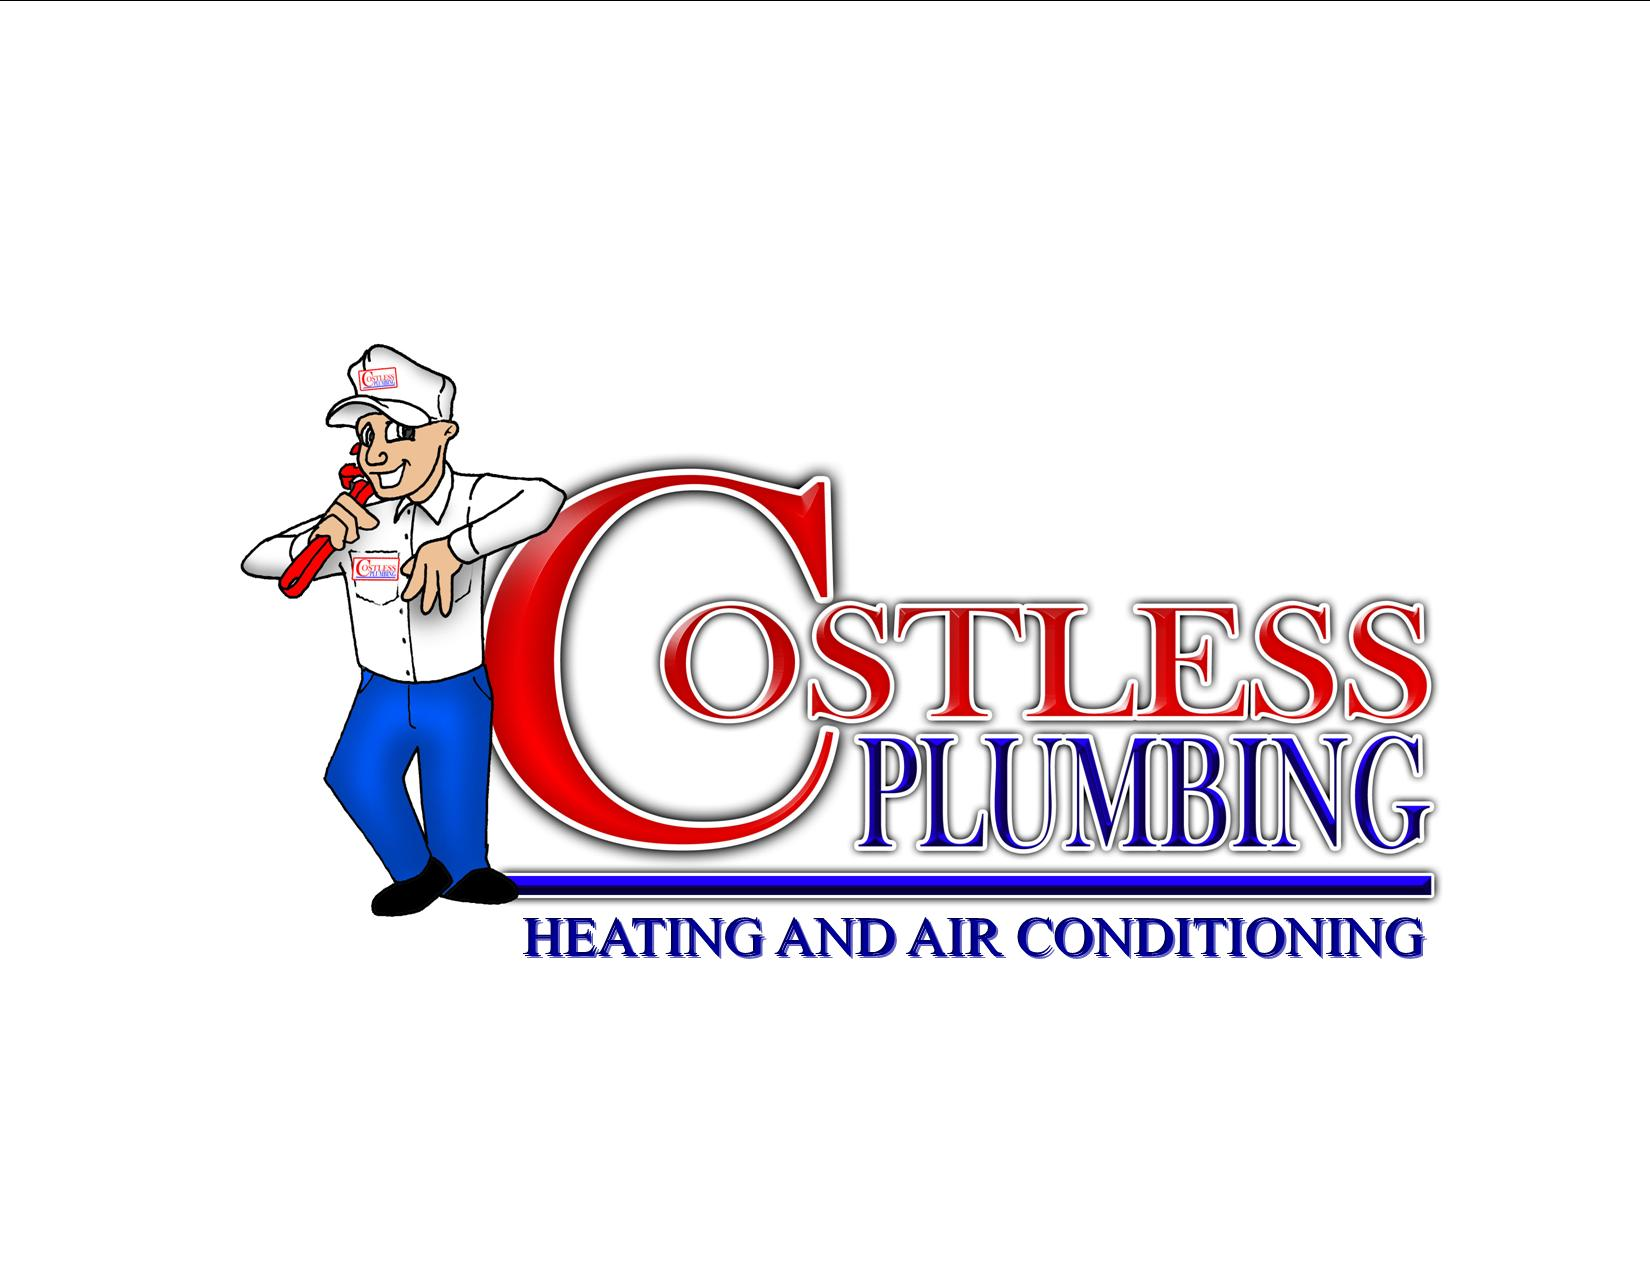 Costless Plumbing Heating And Air Conditoning Fresno Ca 93703 559 441 9600 Showmelocal